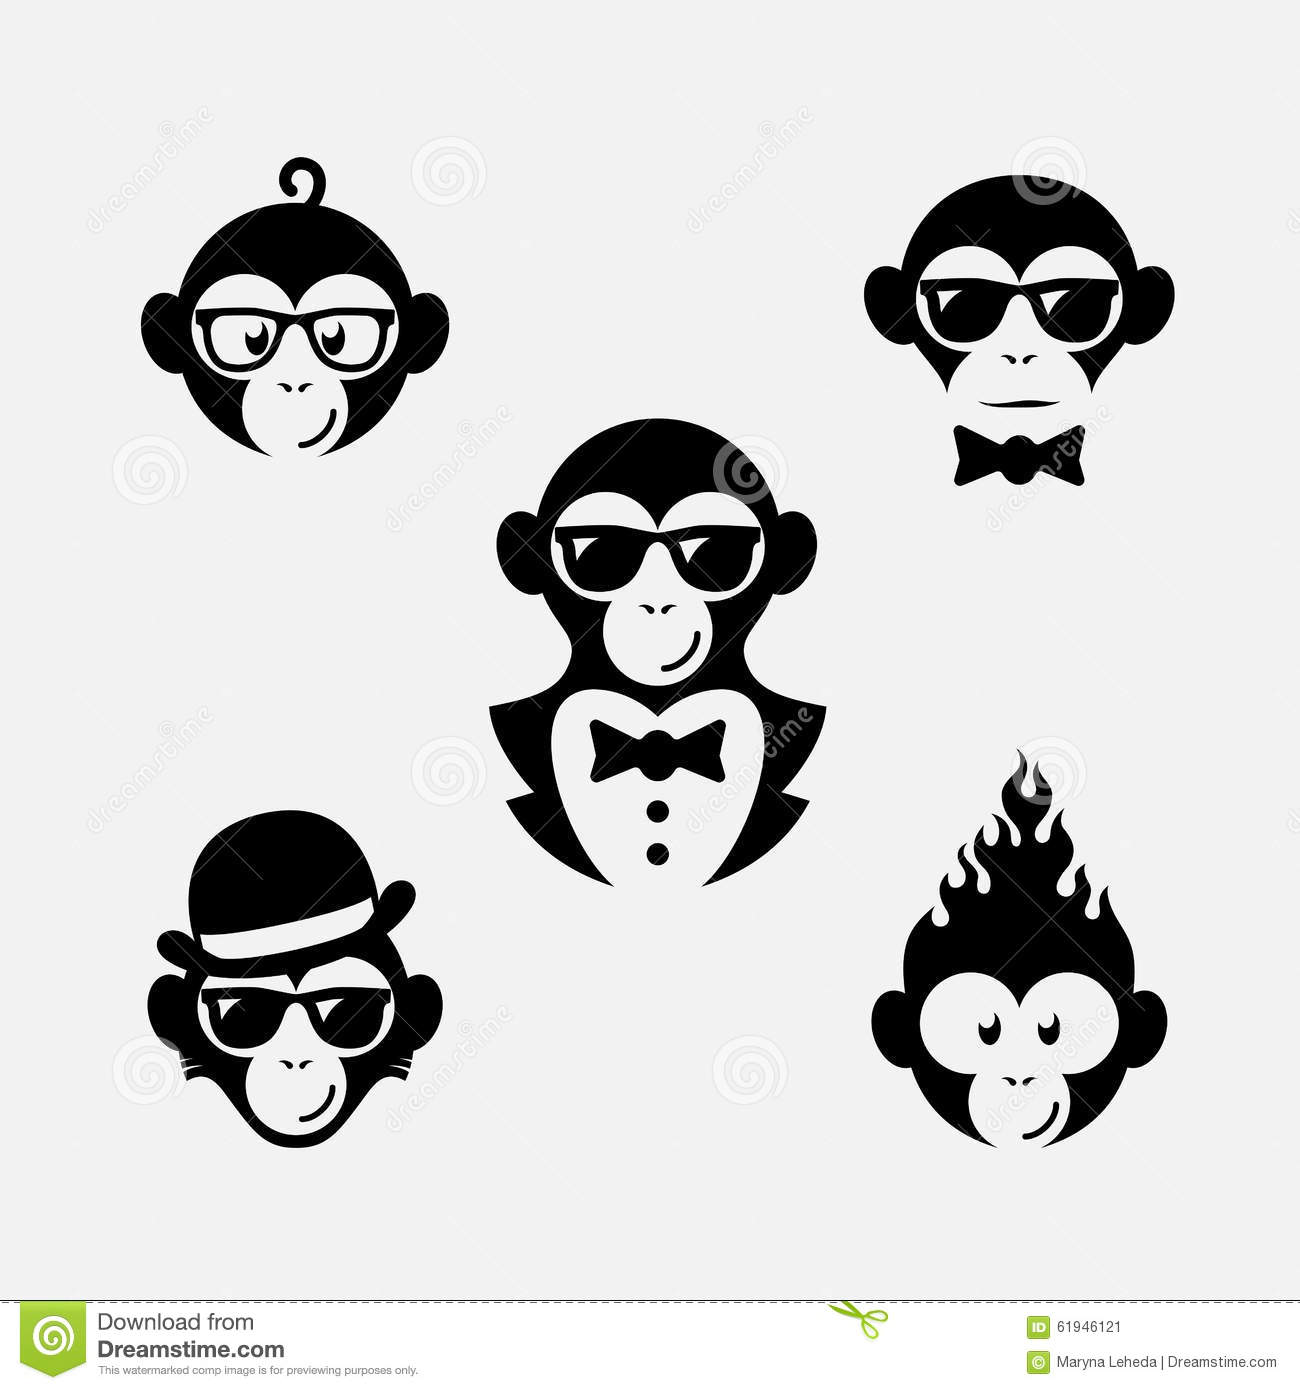 Set of funny logo design templates with monkey. Vector illustration.